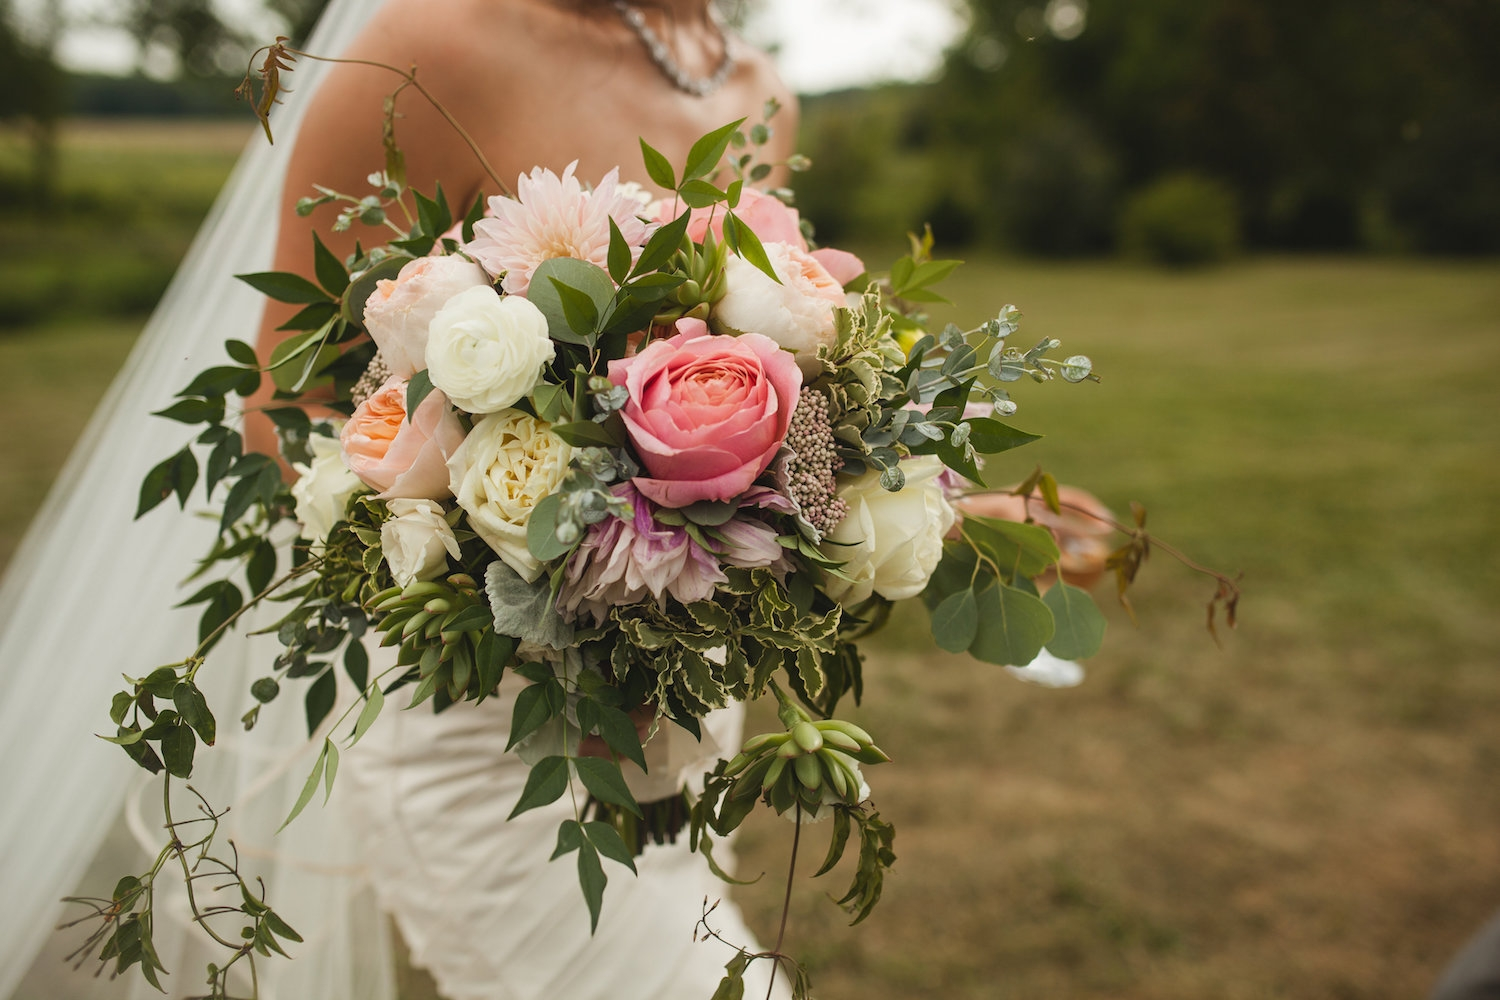 Jennifer loves the Ranunculus, Zinnia, Garden Roses and Rice Flower in the bouquet. Photography by Carly Romeo + Co.